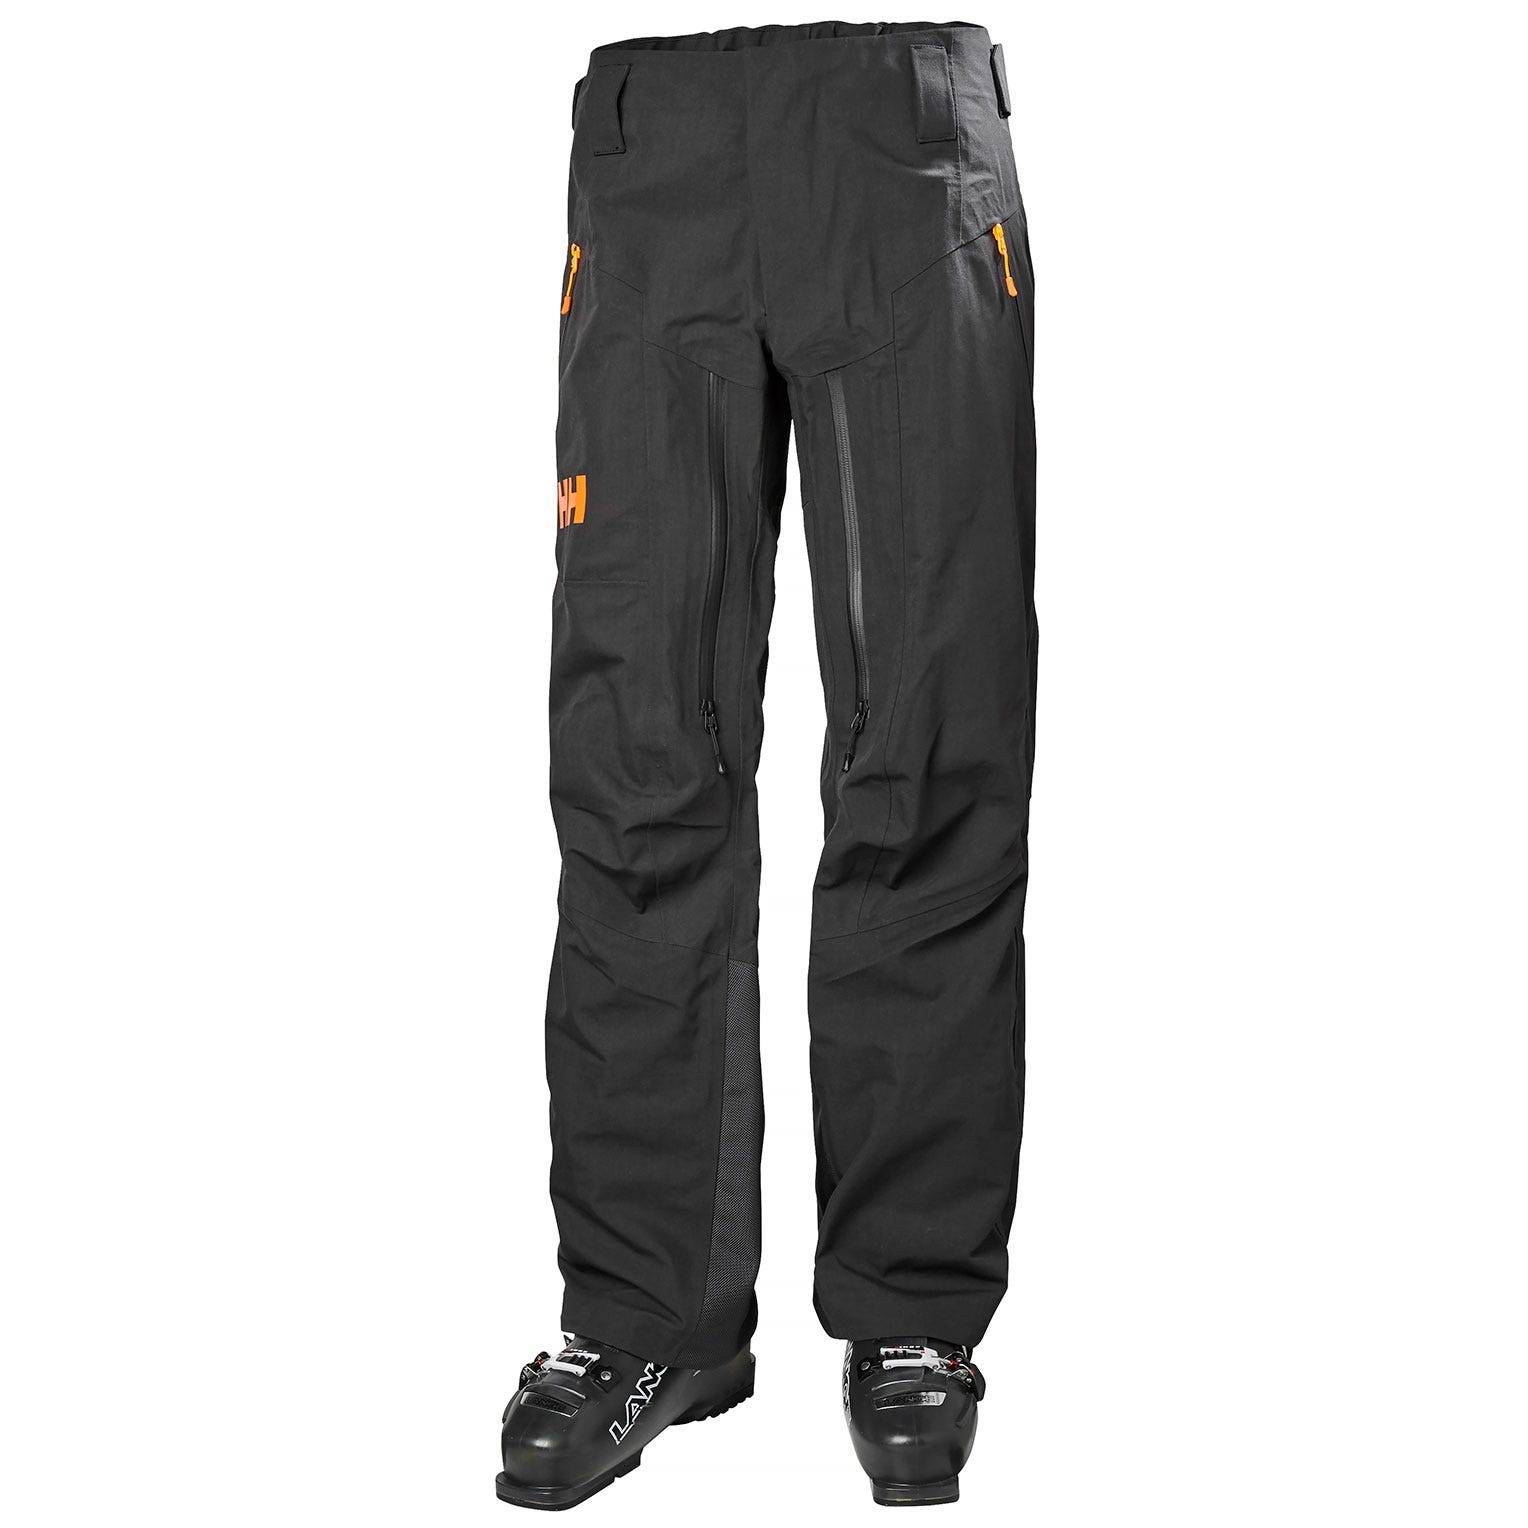 Helly Hansen Wasatch Shell Pant Mens Ski Black XL